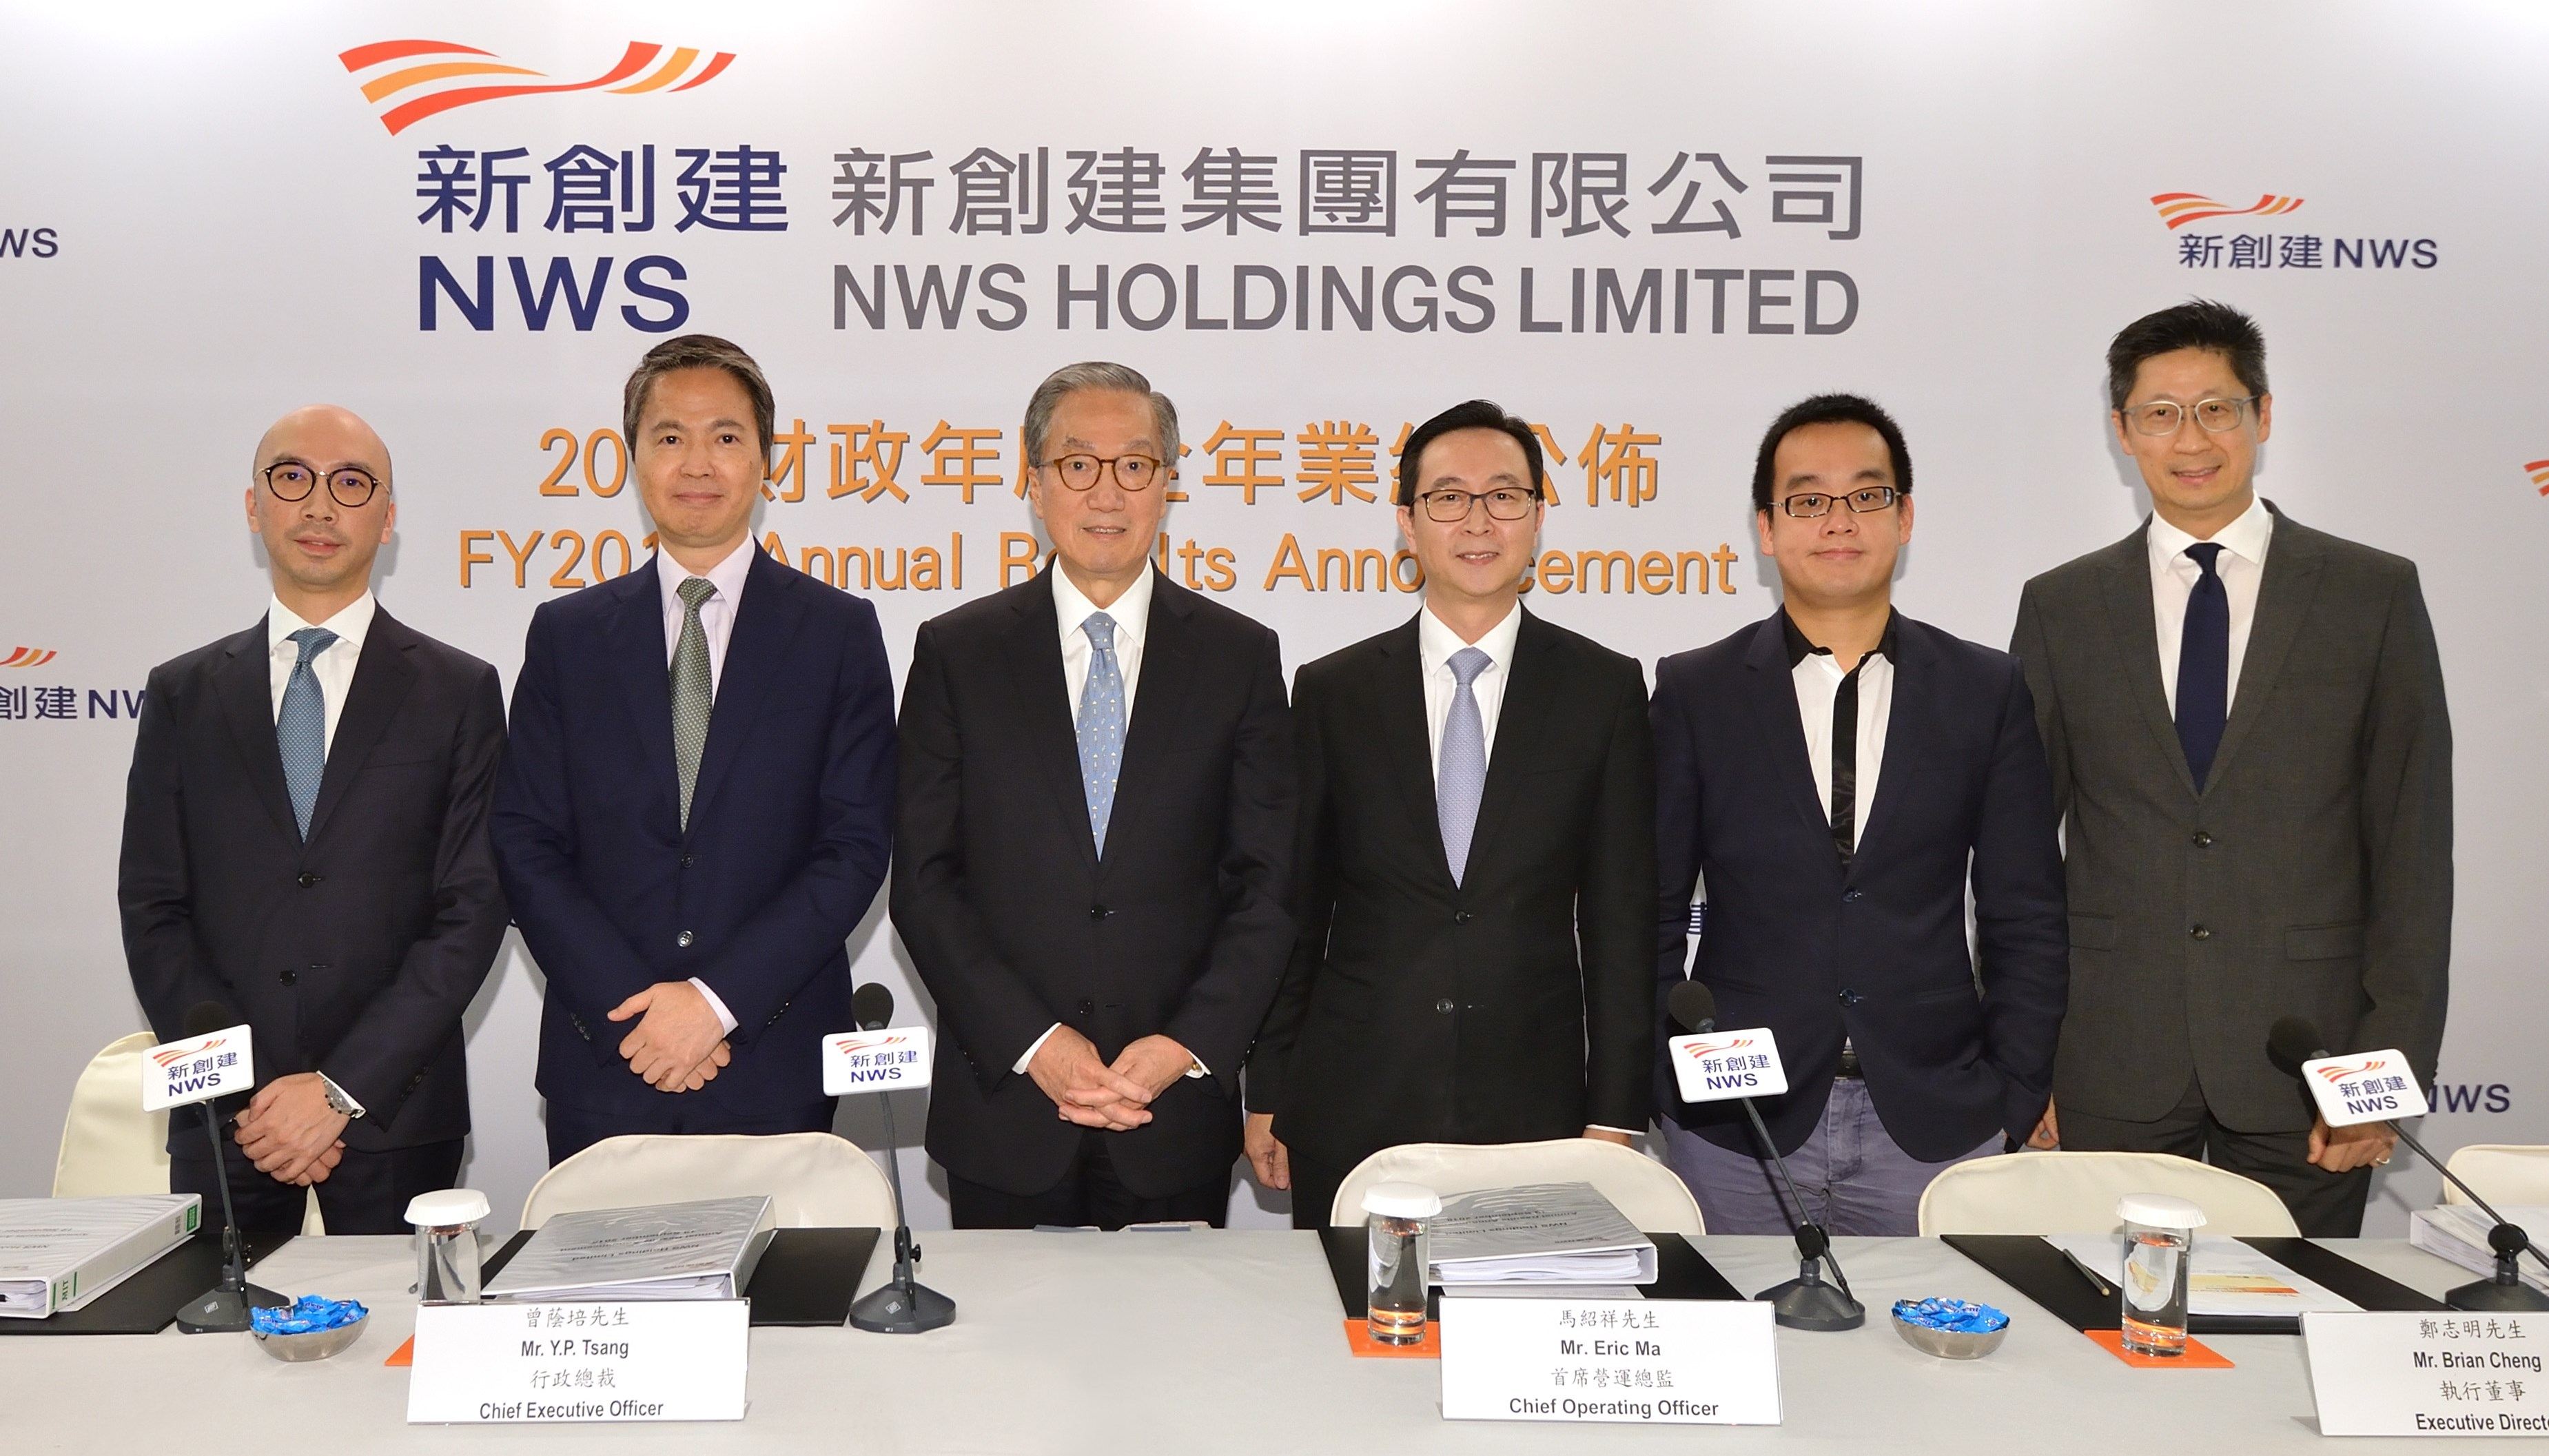 Press Release Photo-NWS Holdings to acquire FTLife Insurance for HK$21.5 billion in cash